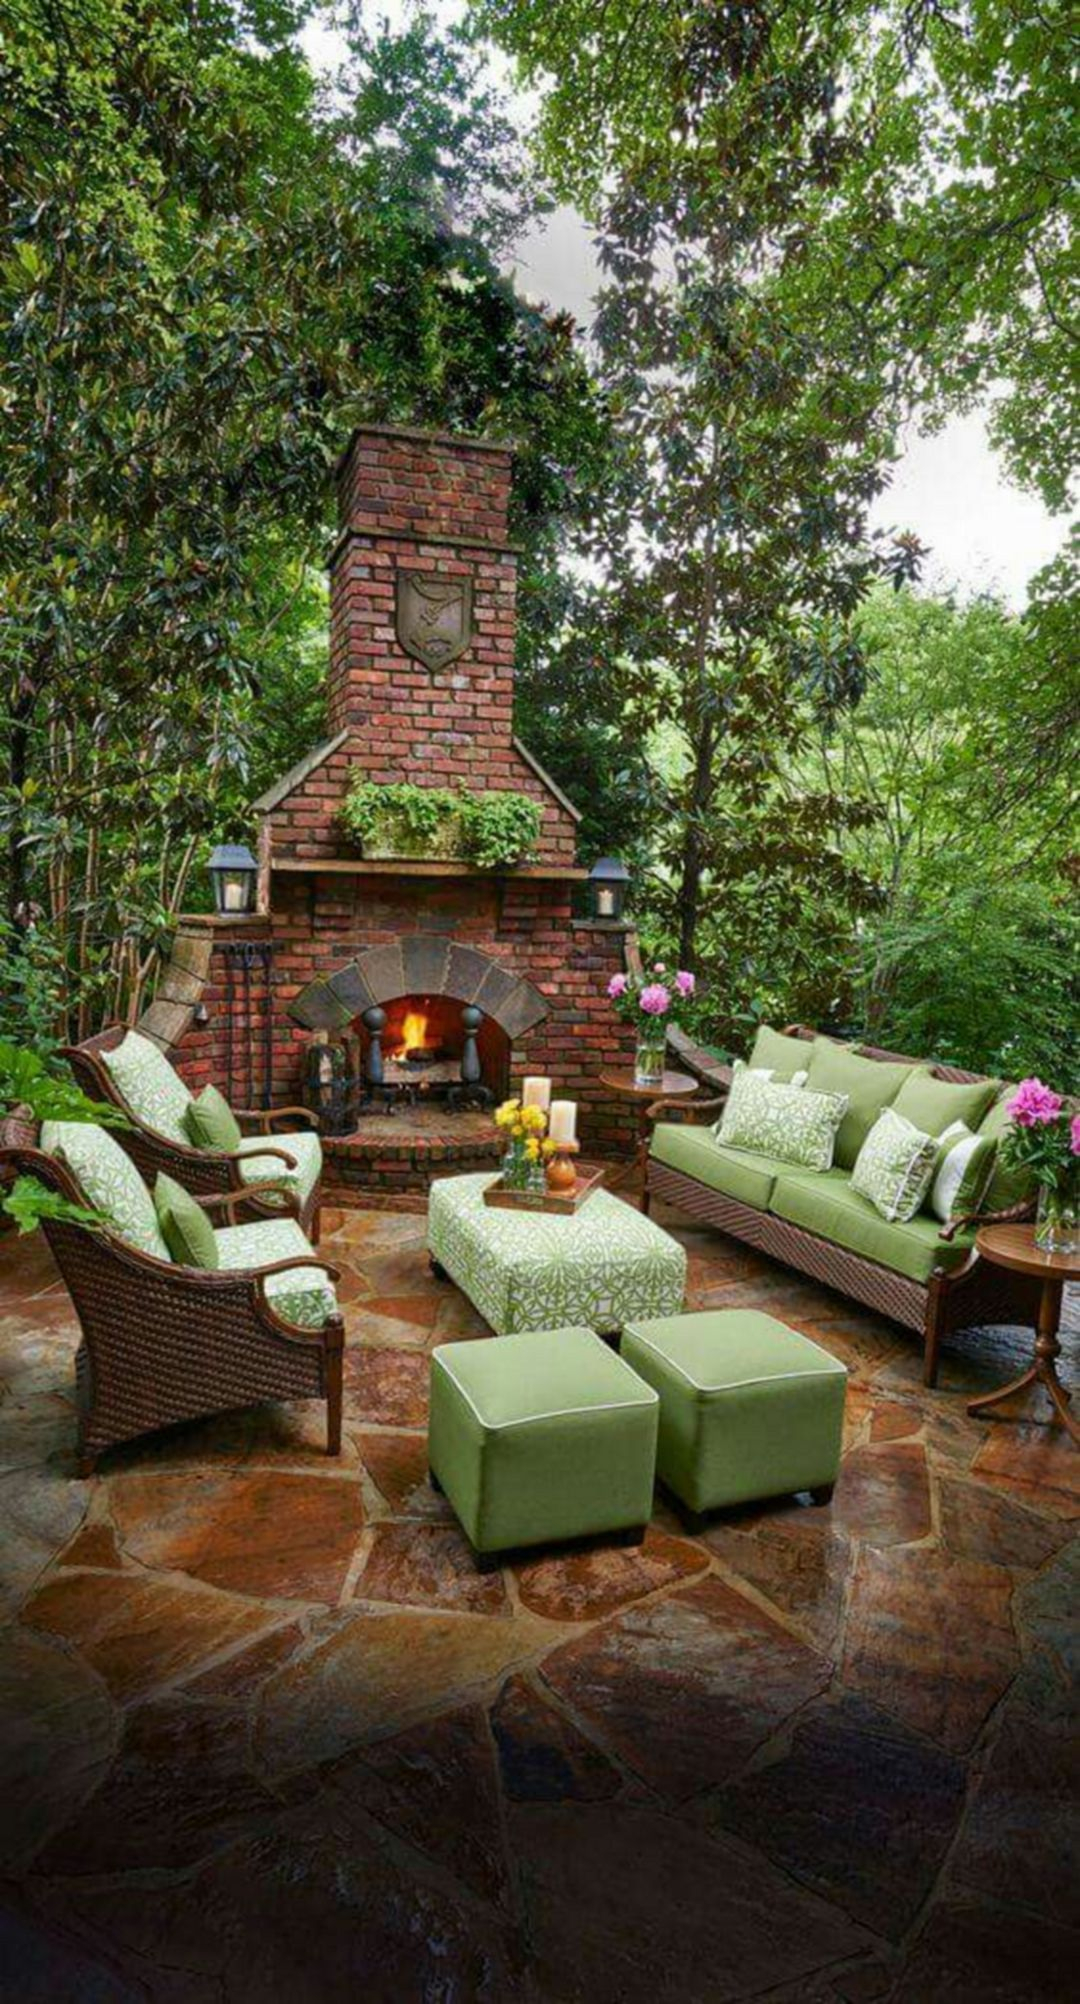 Astonshing Rustic Outdoor Fireplace Design Ideas 687 Outdoor throughout 10 Clever Initiatives of How to Improve Backyard Living Ideas